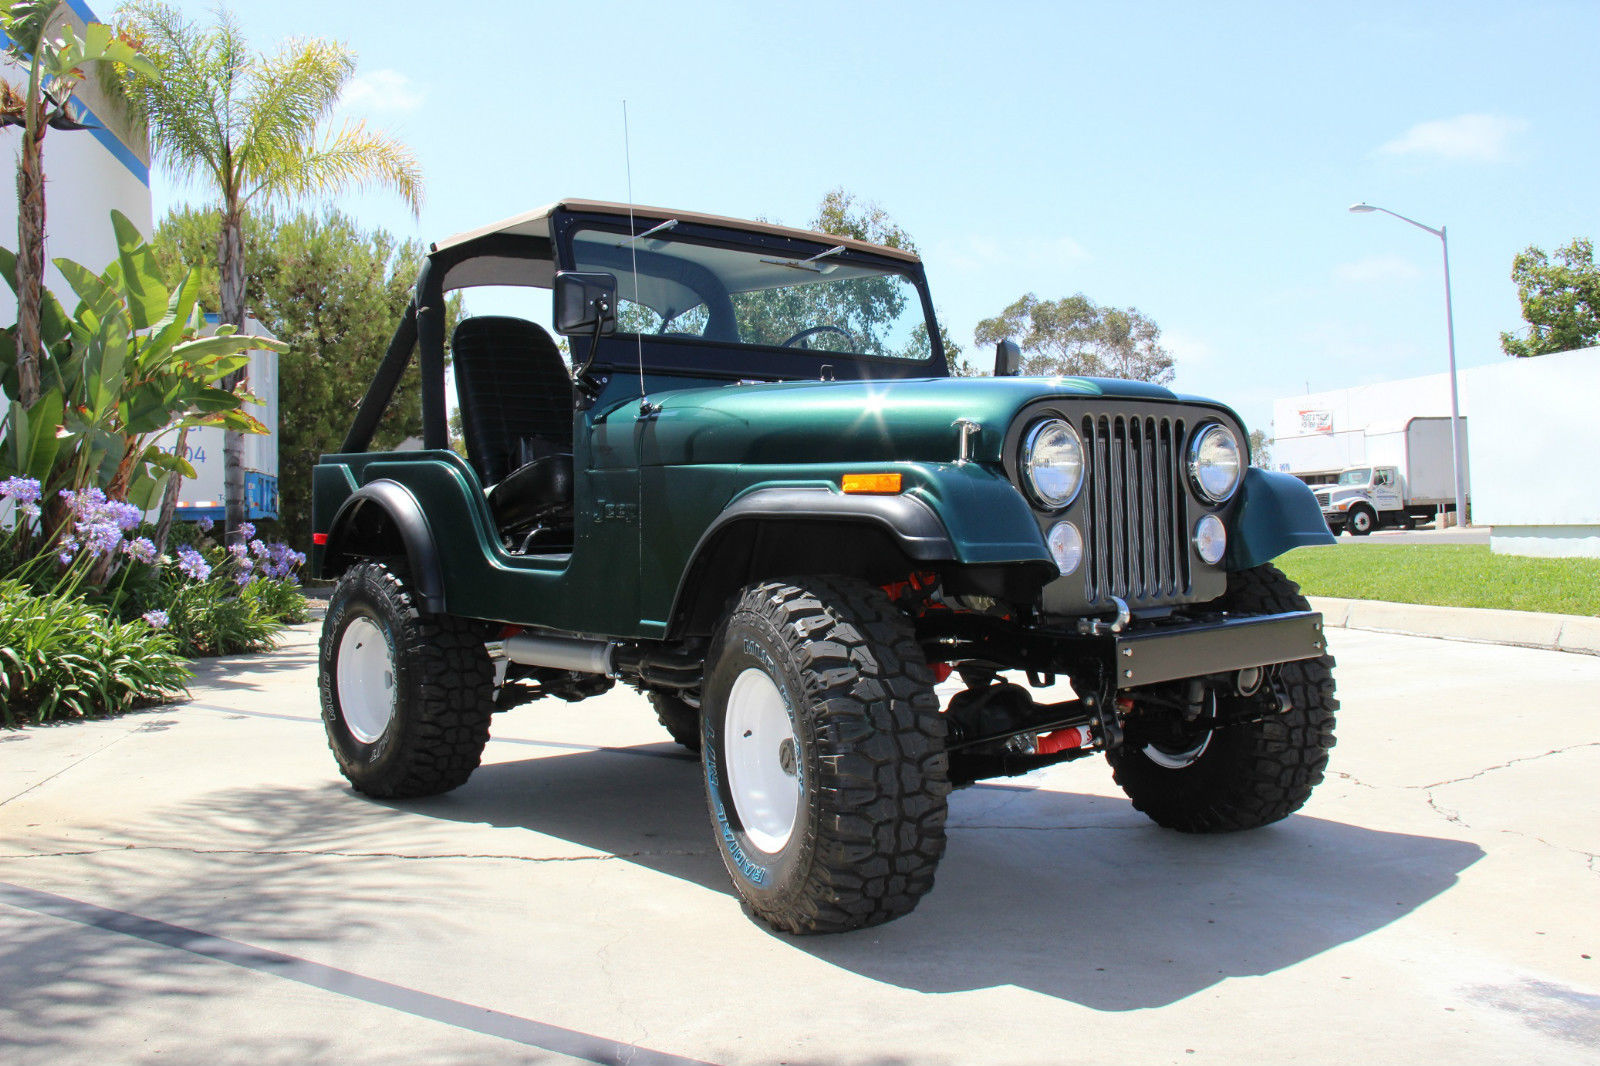 1975 Jeep Cj5 Restored Classic Cj For Sale Cj7 Wiring Restoration